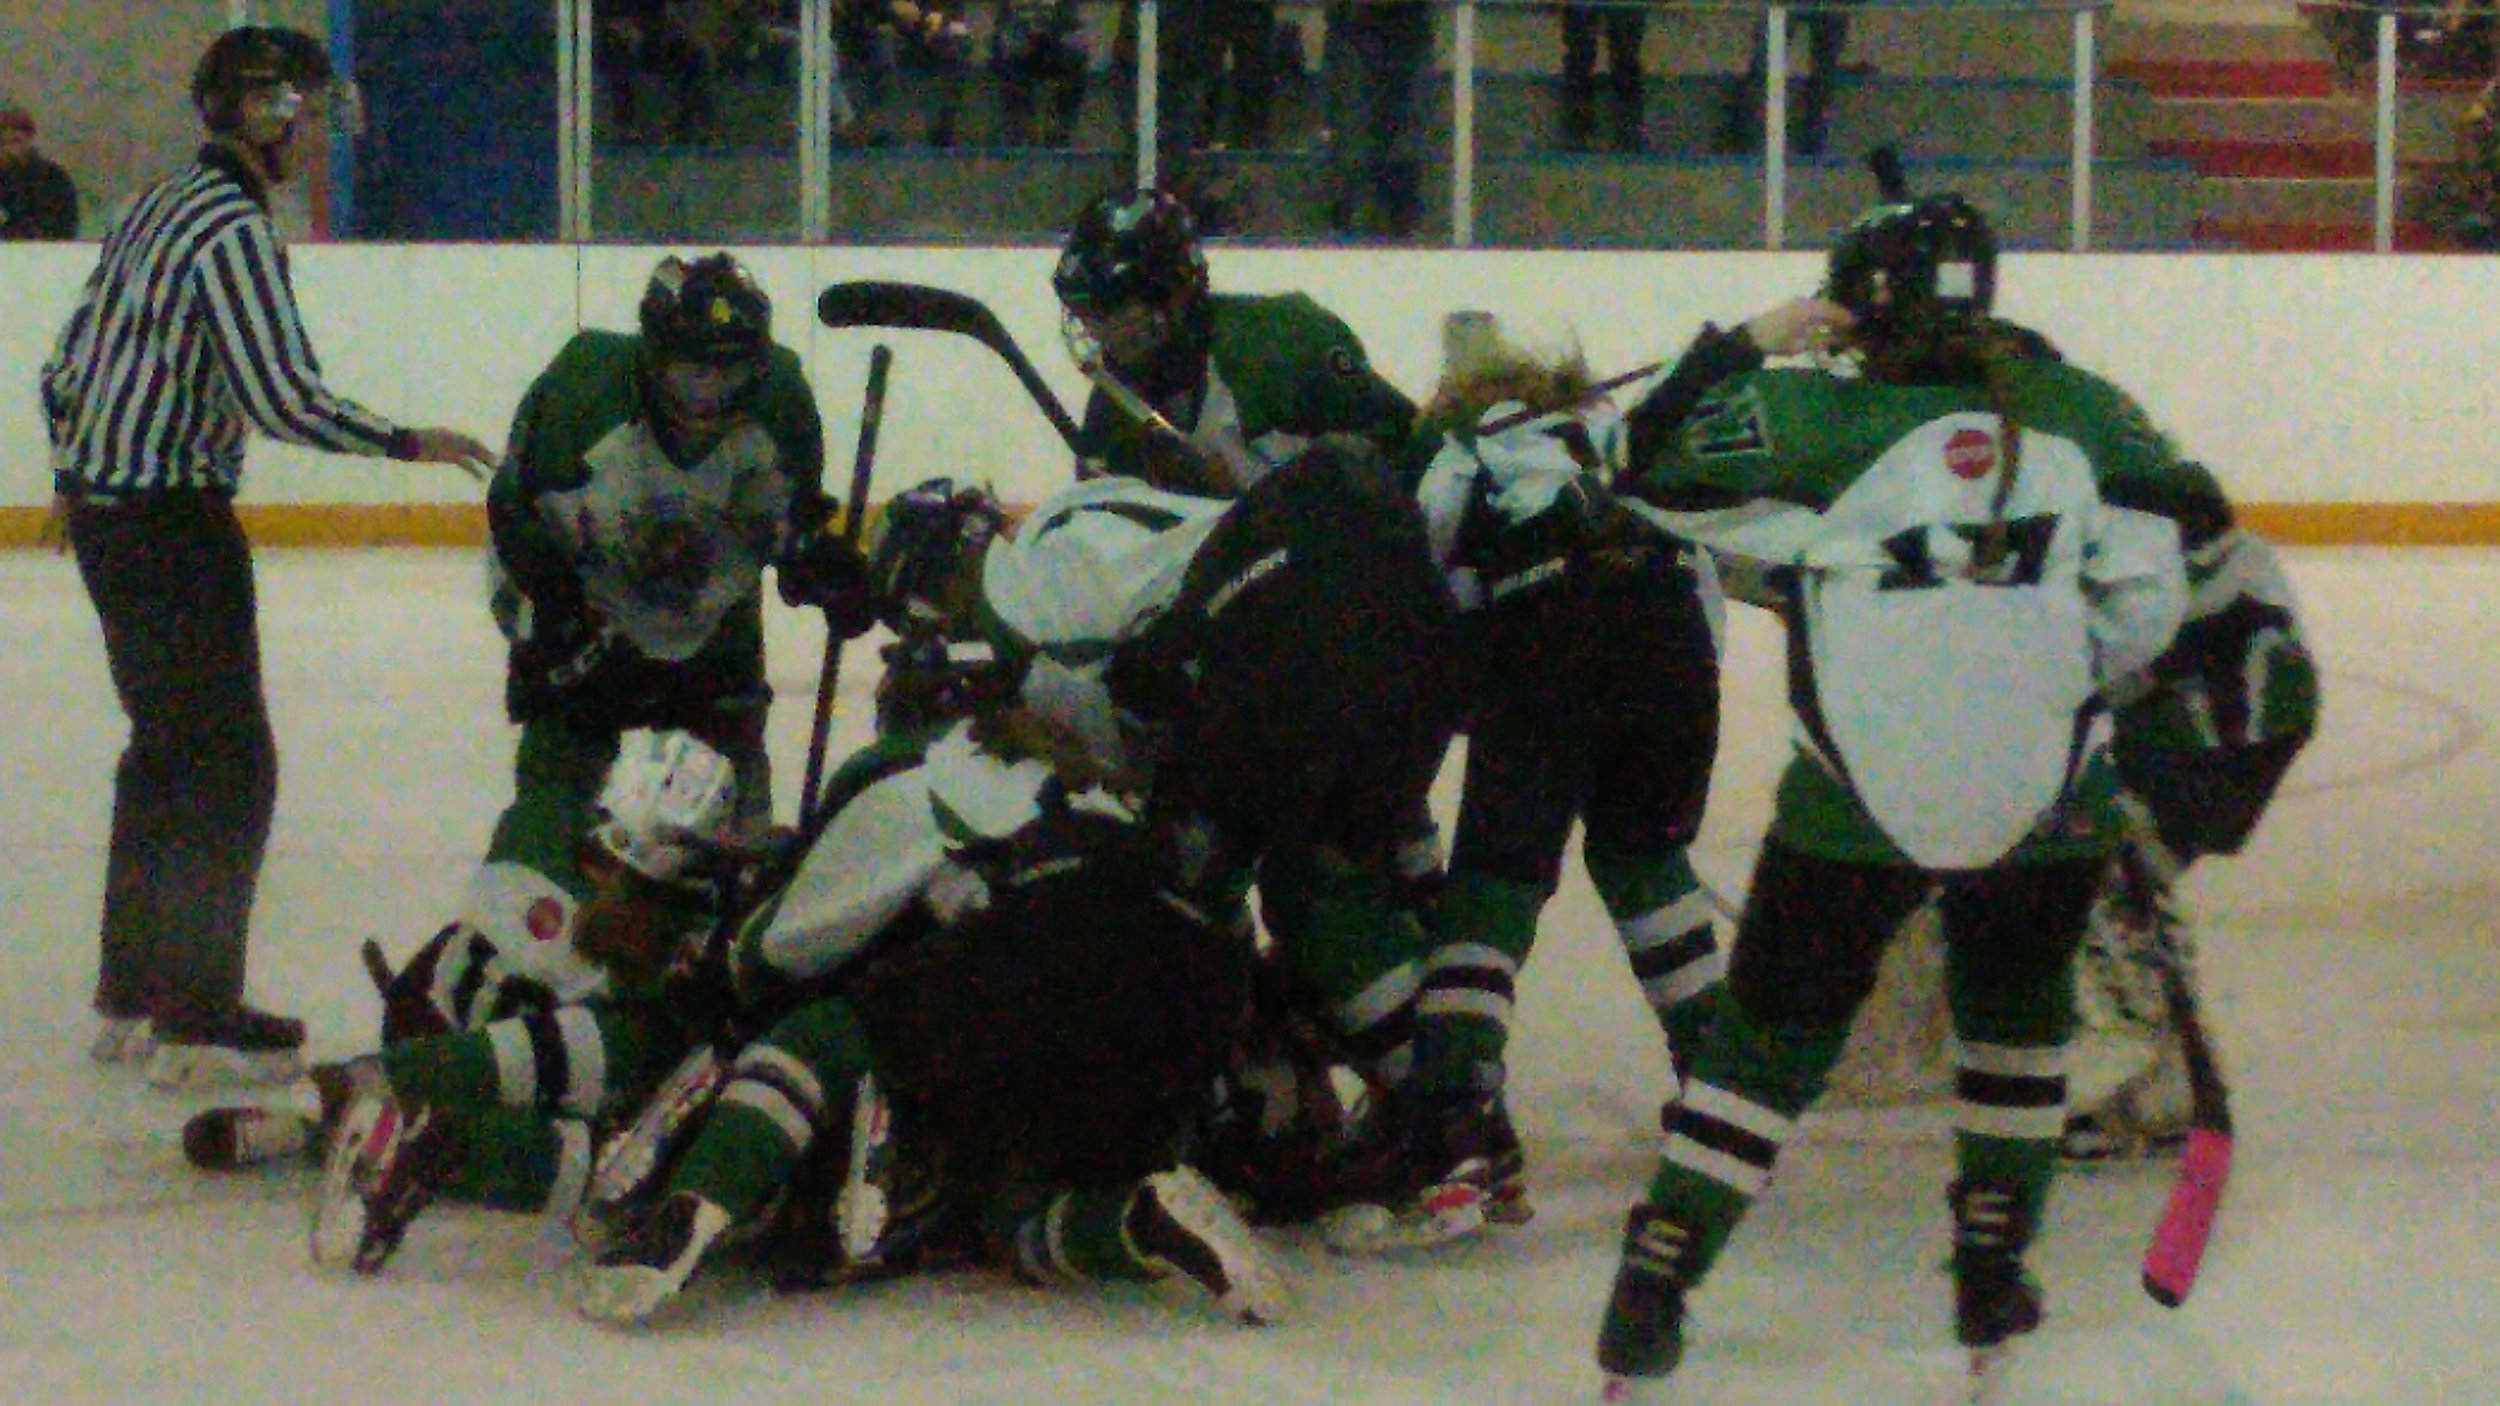 The Mavericks pile on in celebration after scoring the overtime winner